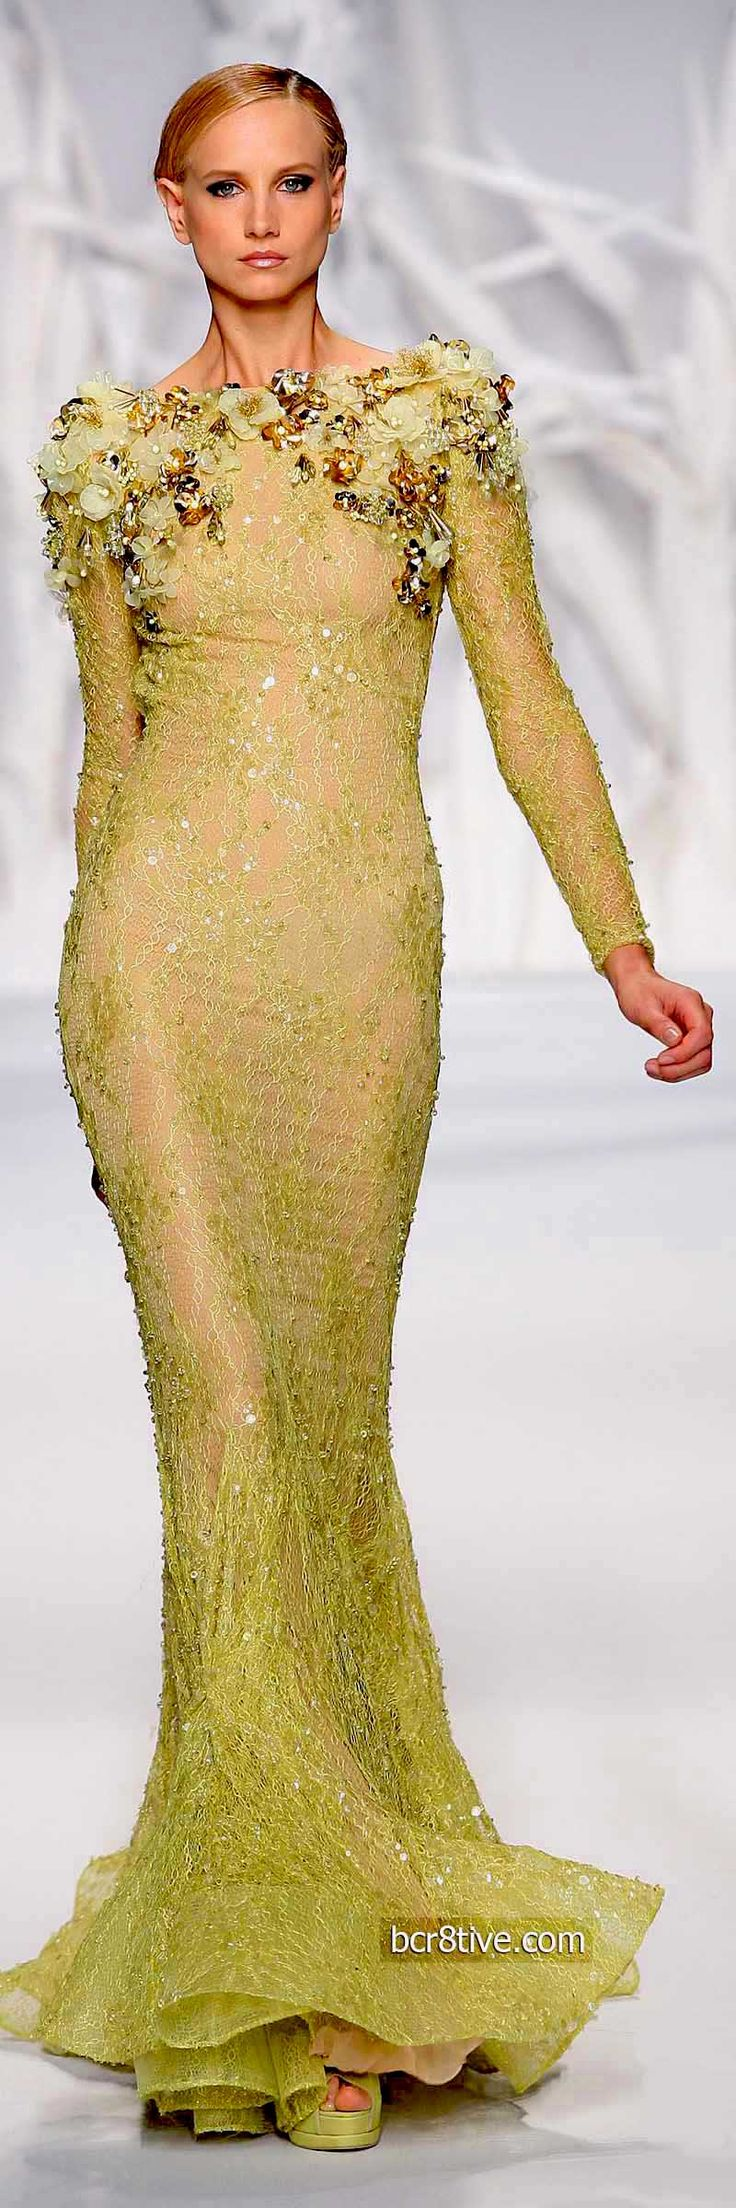 Abed Mahfouz Fall Winter 2014 Haute Couture Collection » bcr8tiven/// I love this dress...It's stunning....